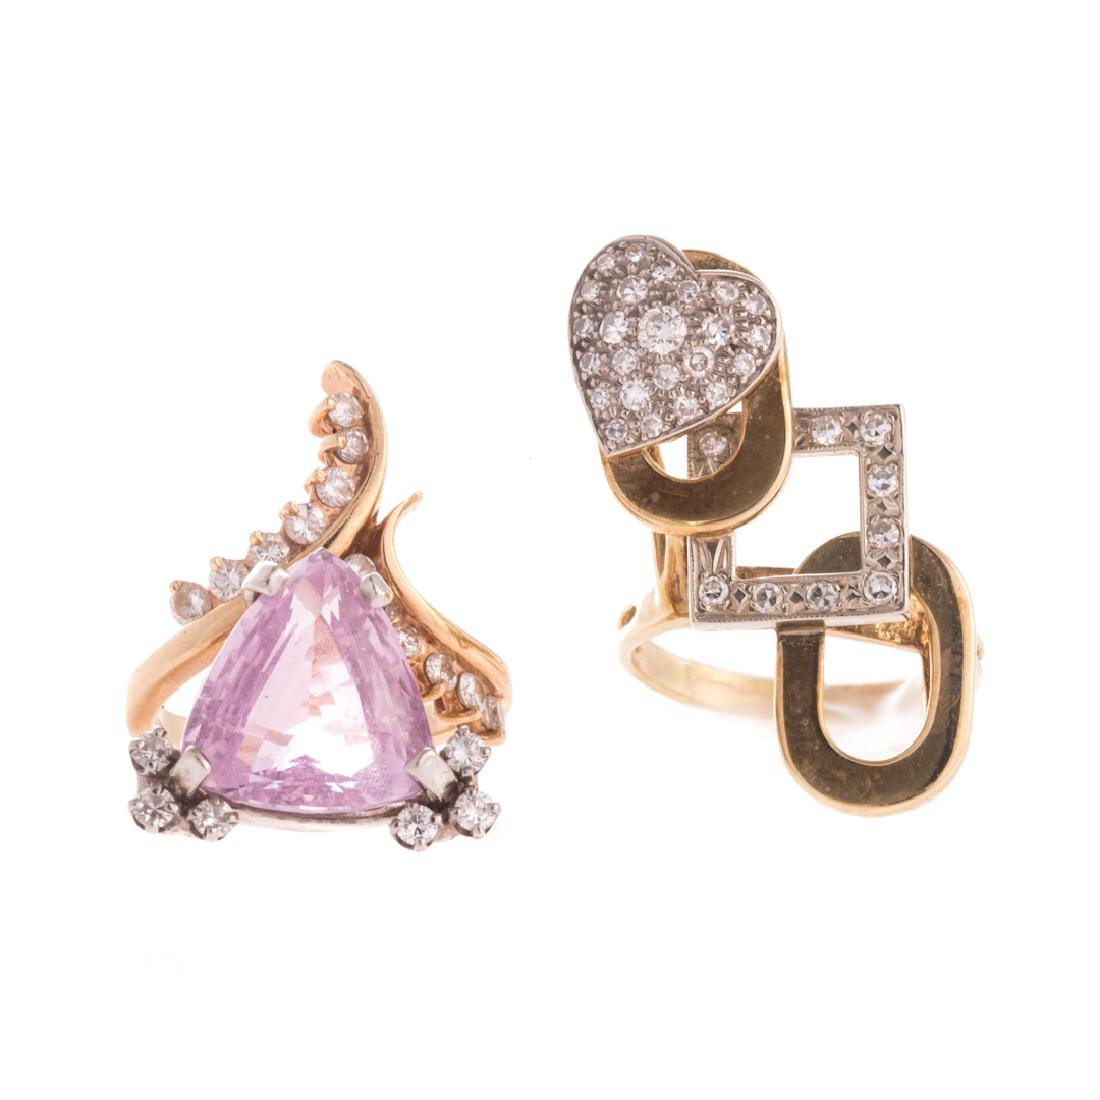 Two Lady's Contemporary Diamond Rings in 14K